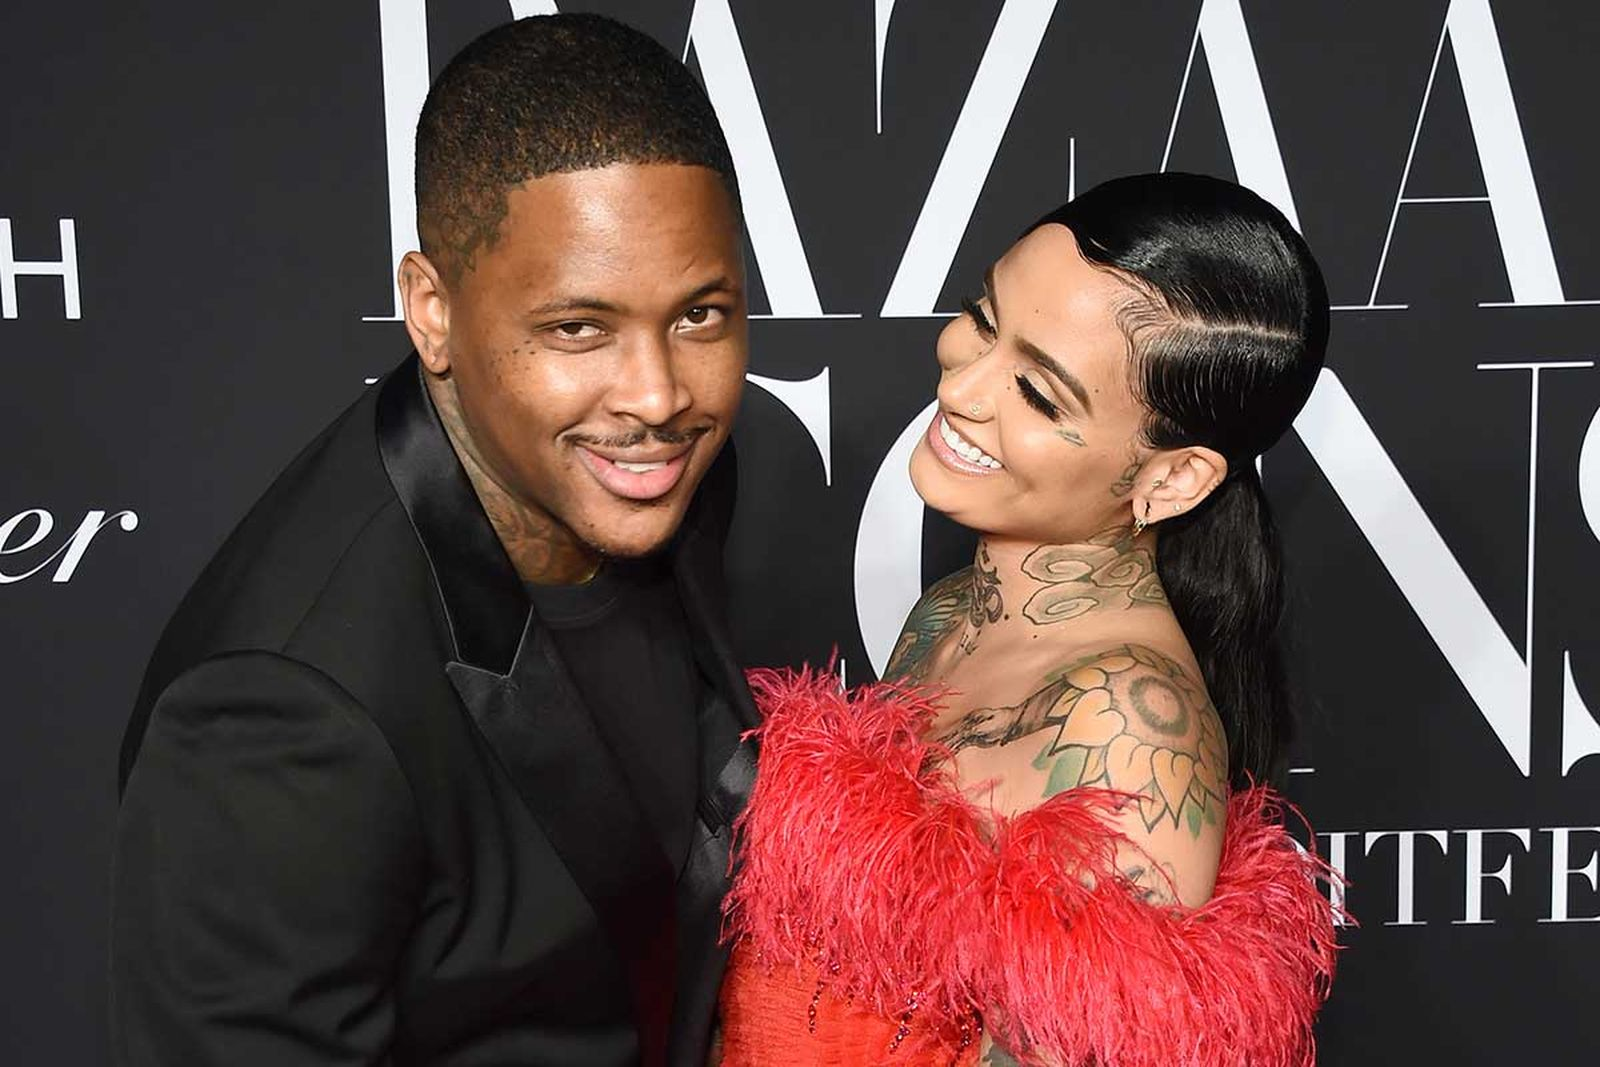 YG and Kehlani smiling on the red carpet